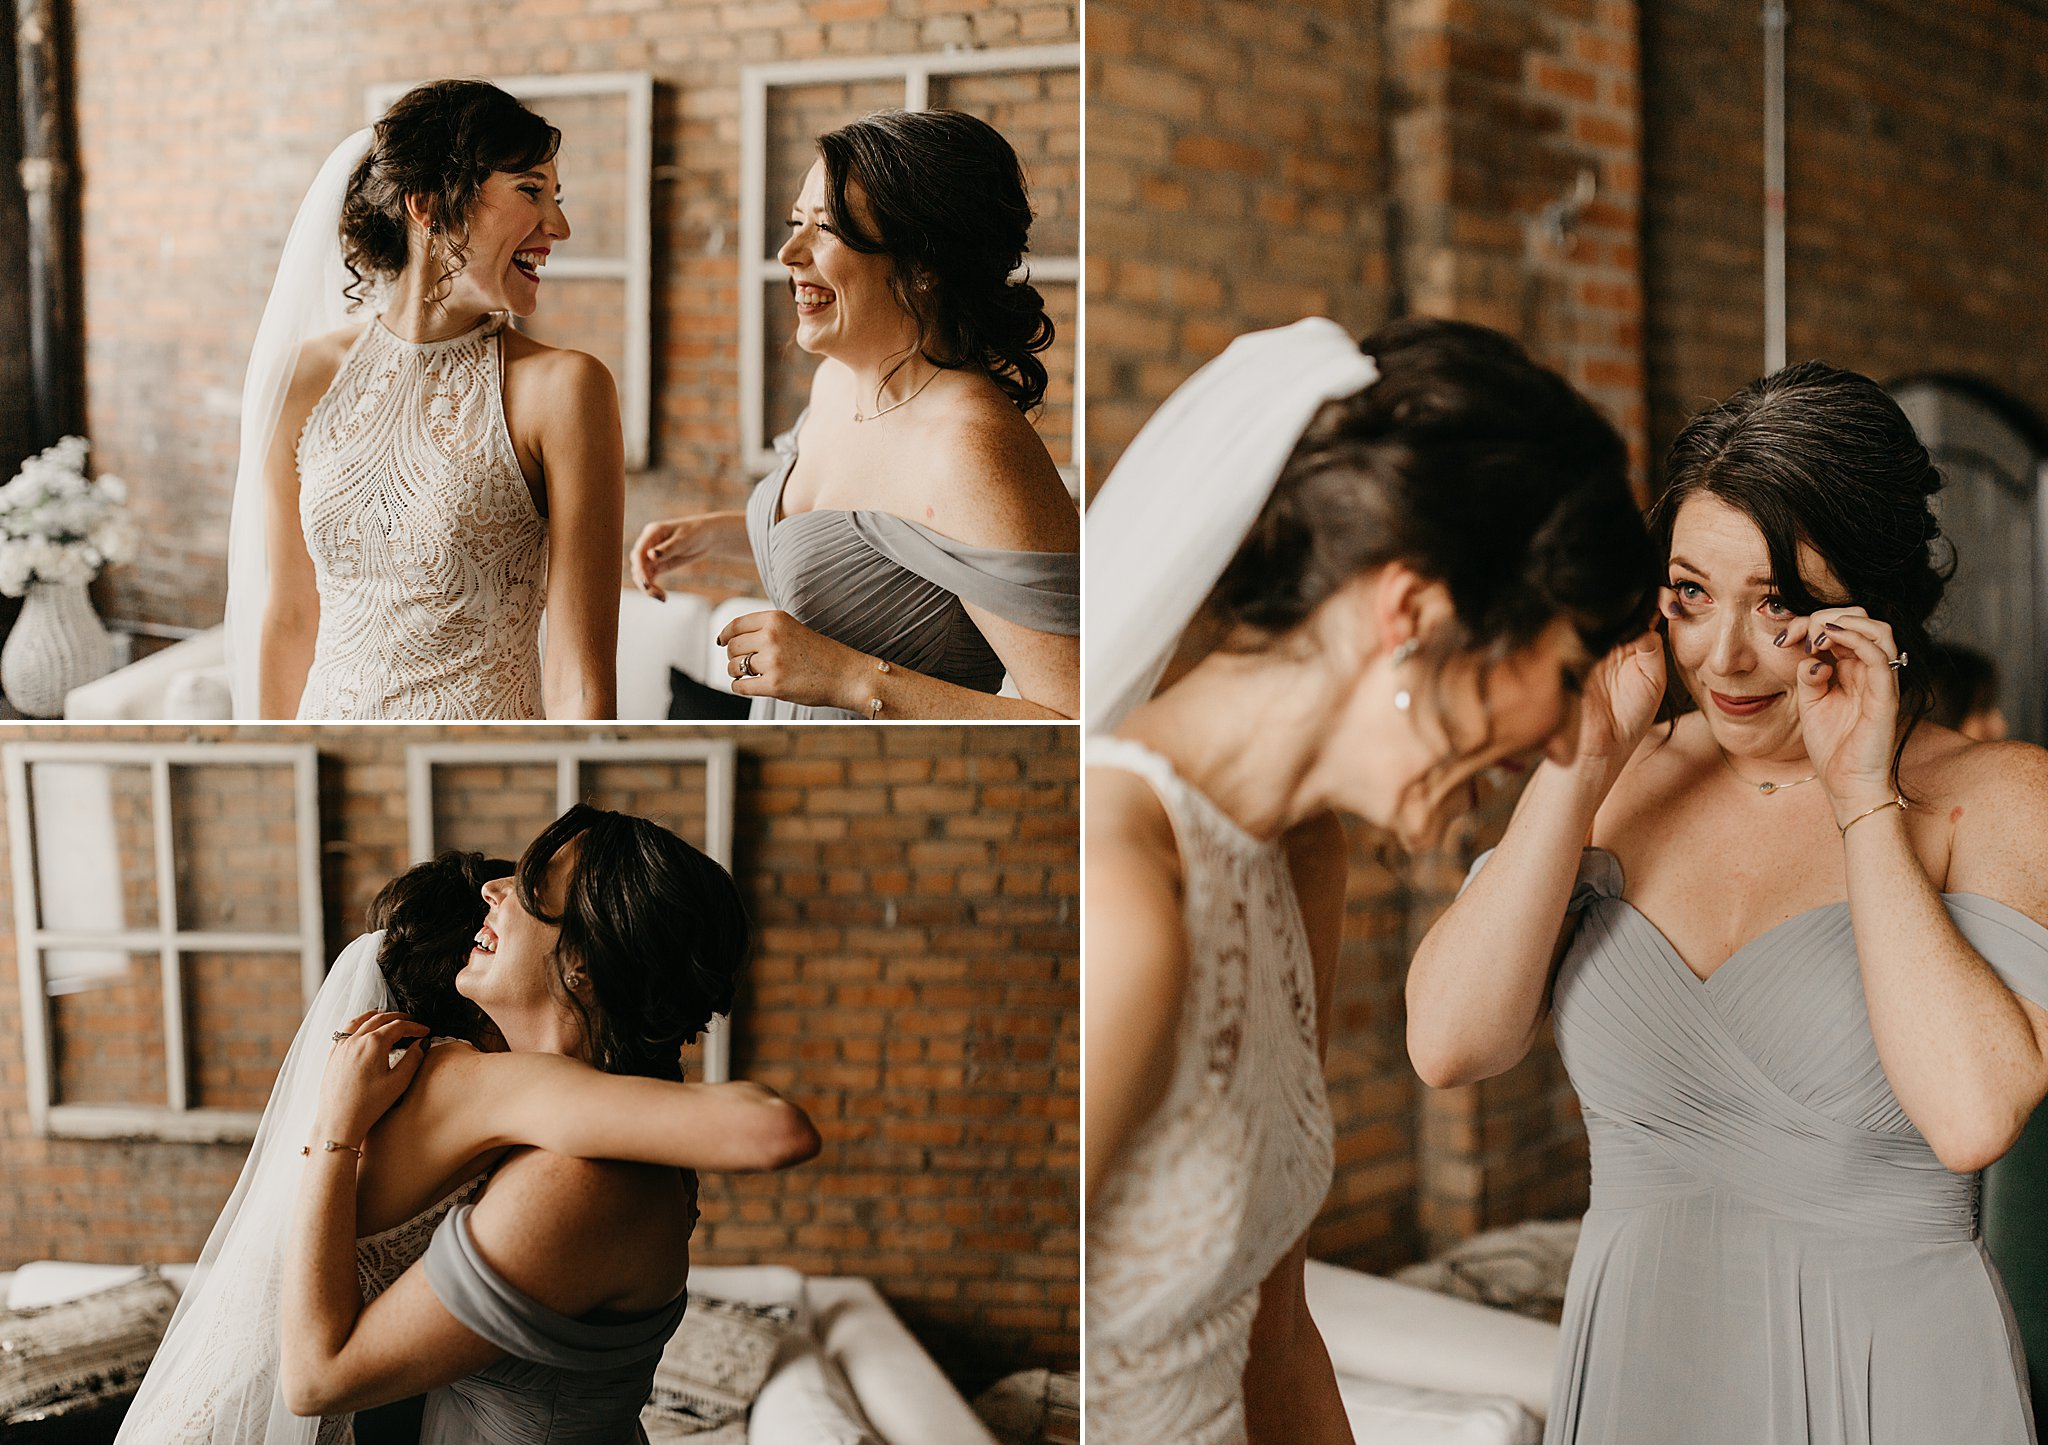 Wilderlove Co_Wedding Photographer_Industrial Wedding_Jewish Wedding_Dallas Texas Wedding_Brake & Clutch Warehouse_North Texas Photographer_0011.jpg